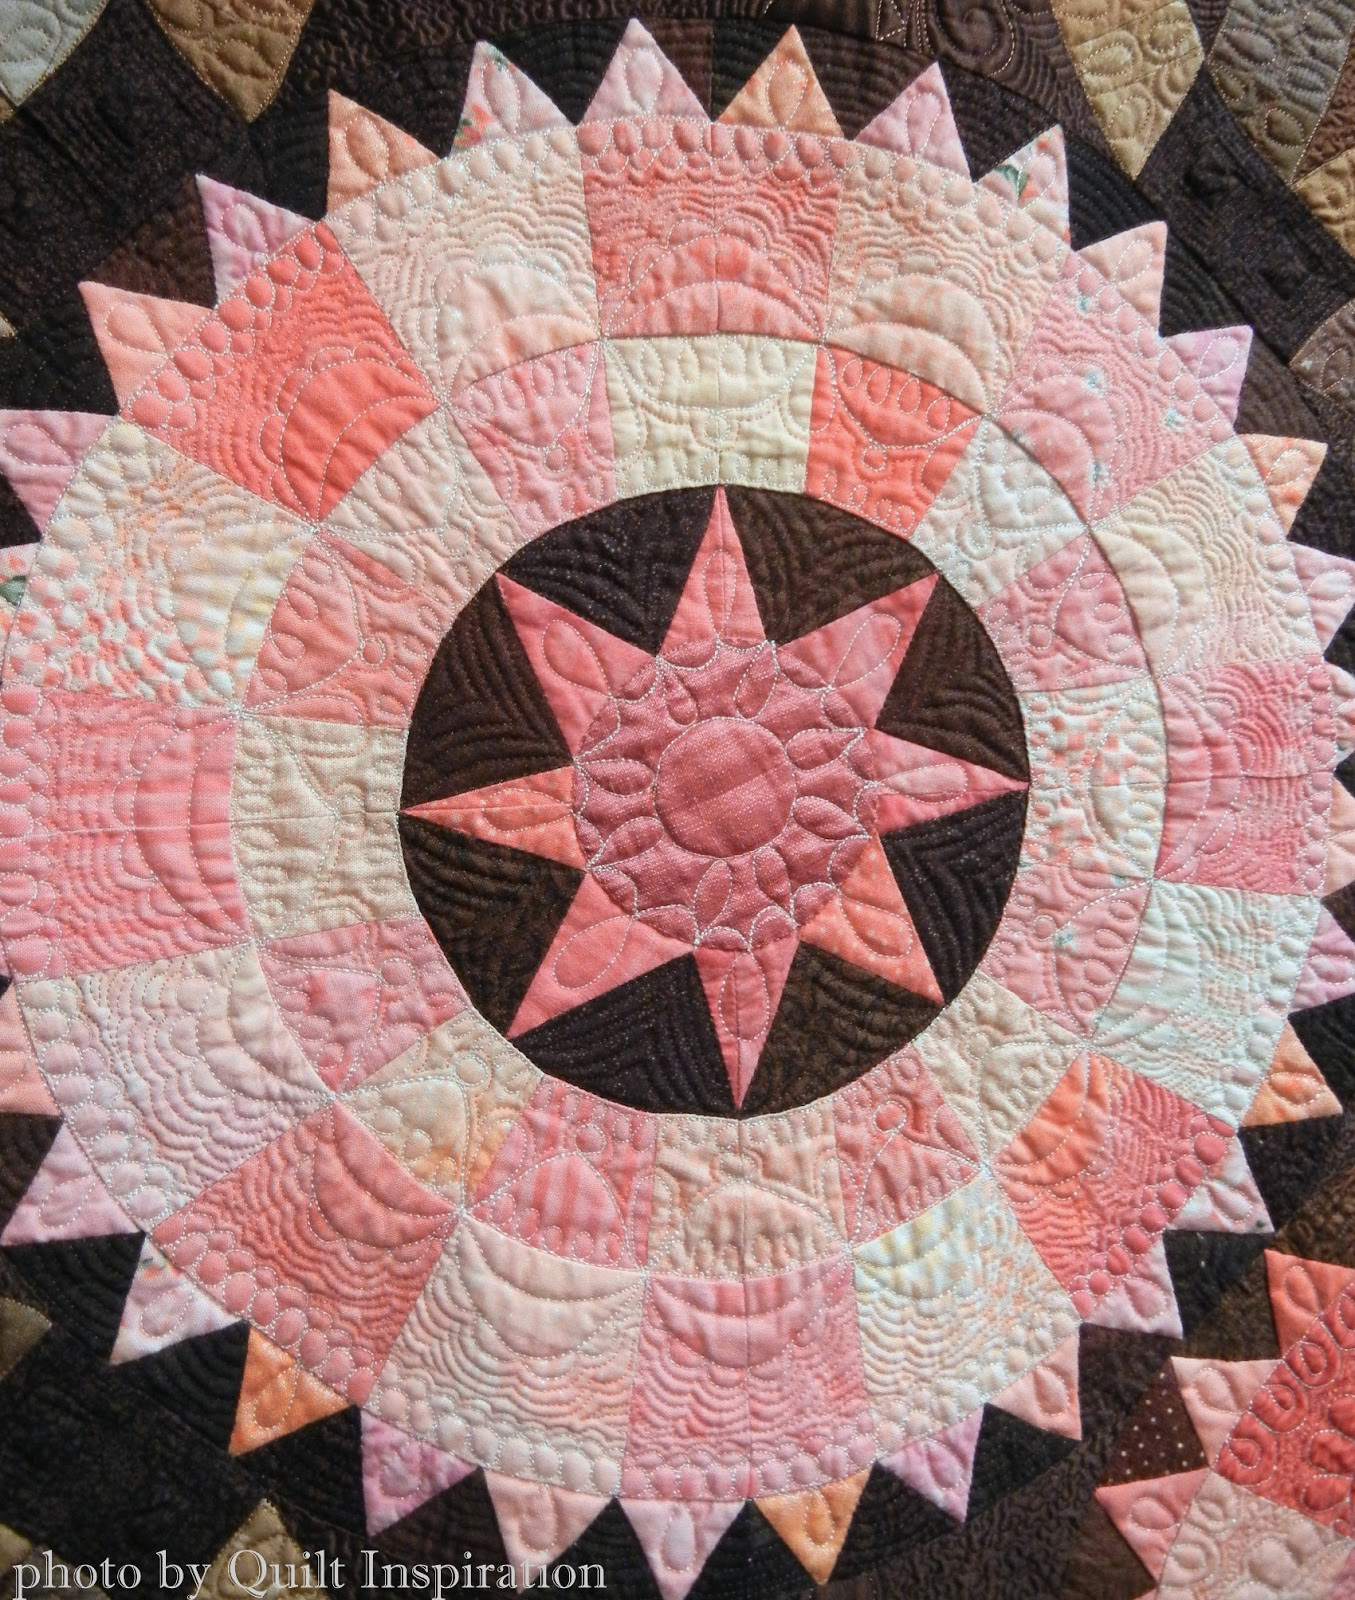 Quilt Inspiration: Beating the Heat at the 2015 Arizona Quilt Show #2